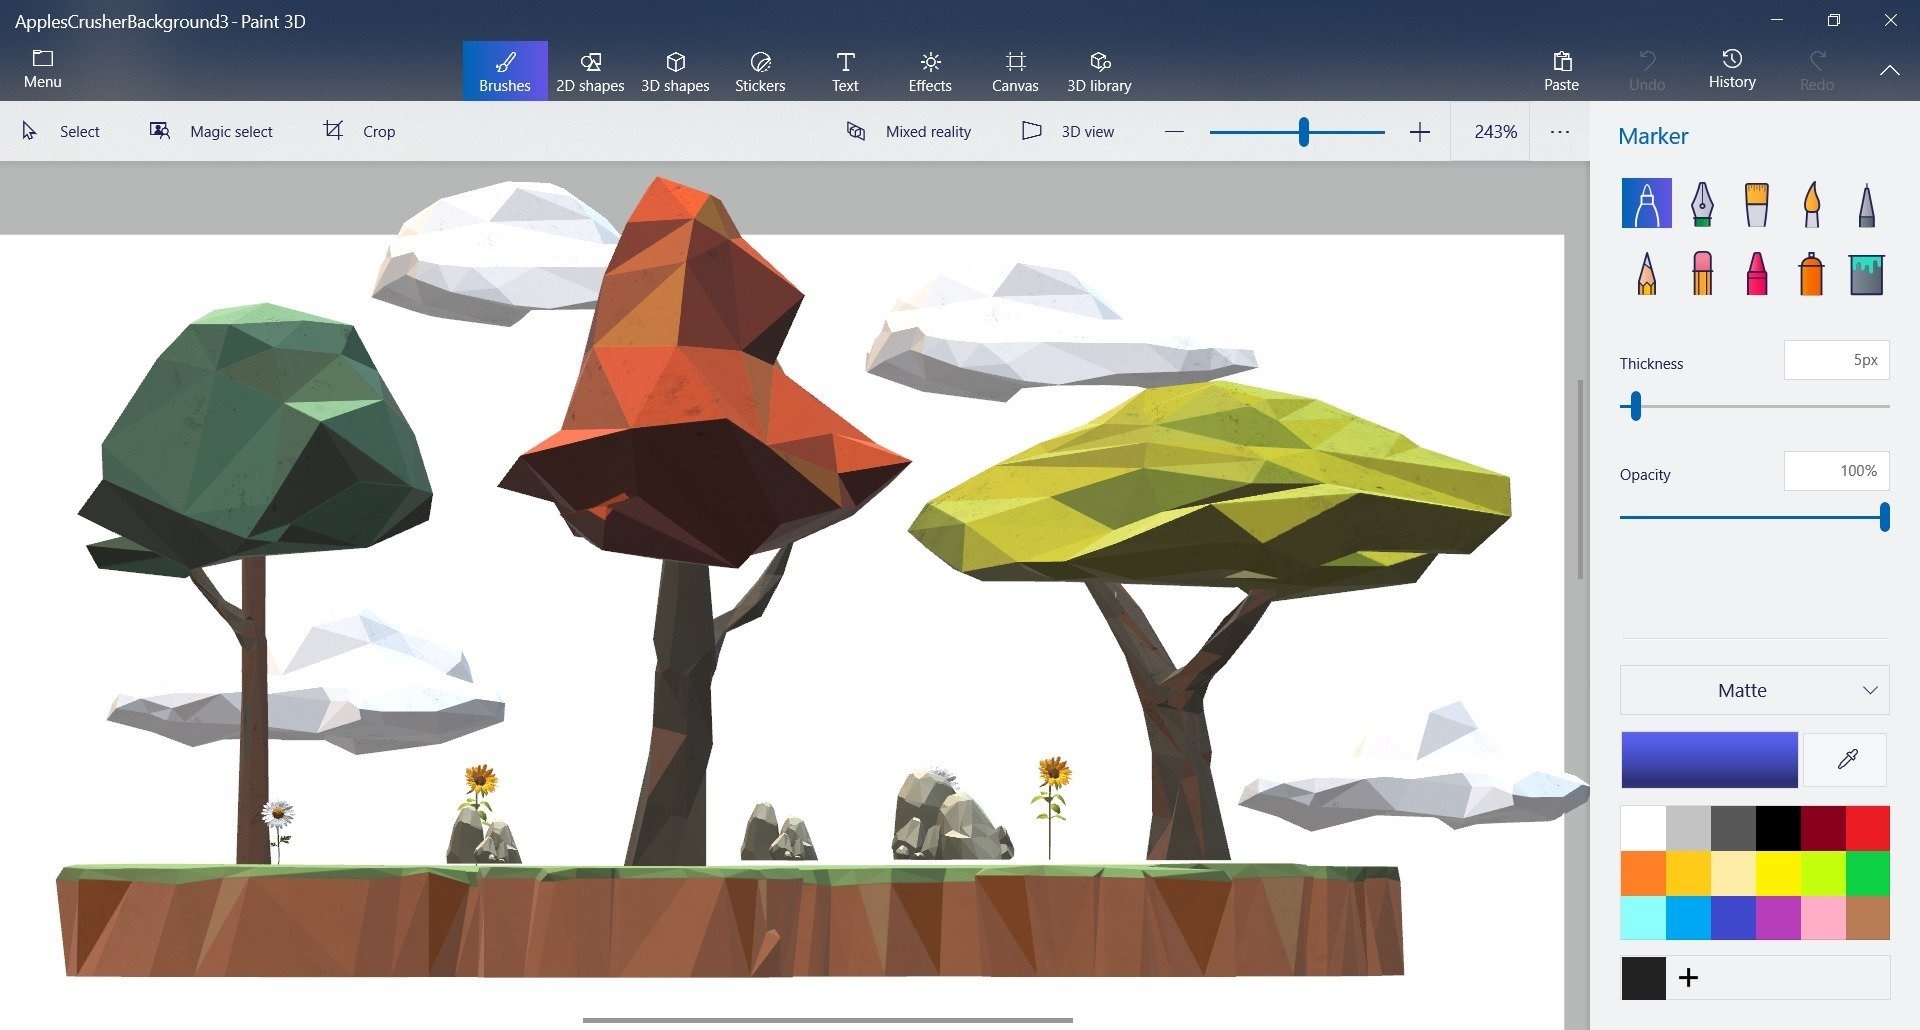 Building the 3d scene of the game using Paint 3D and glTF models